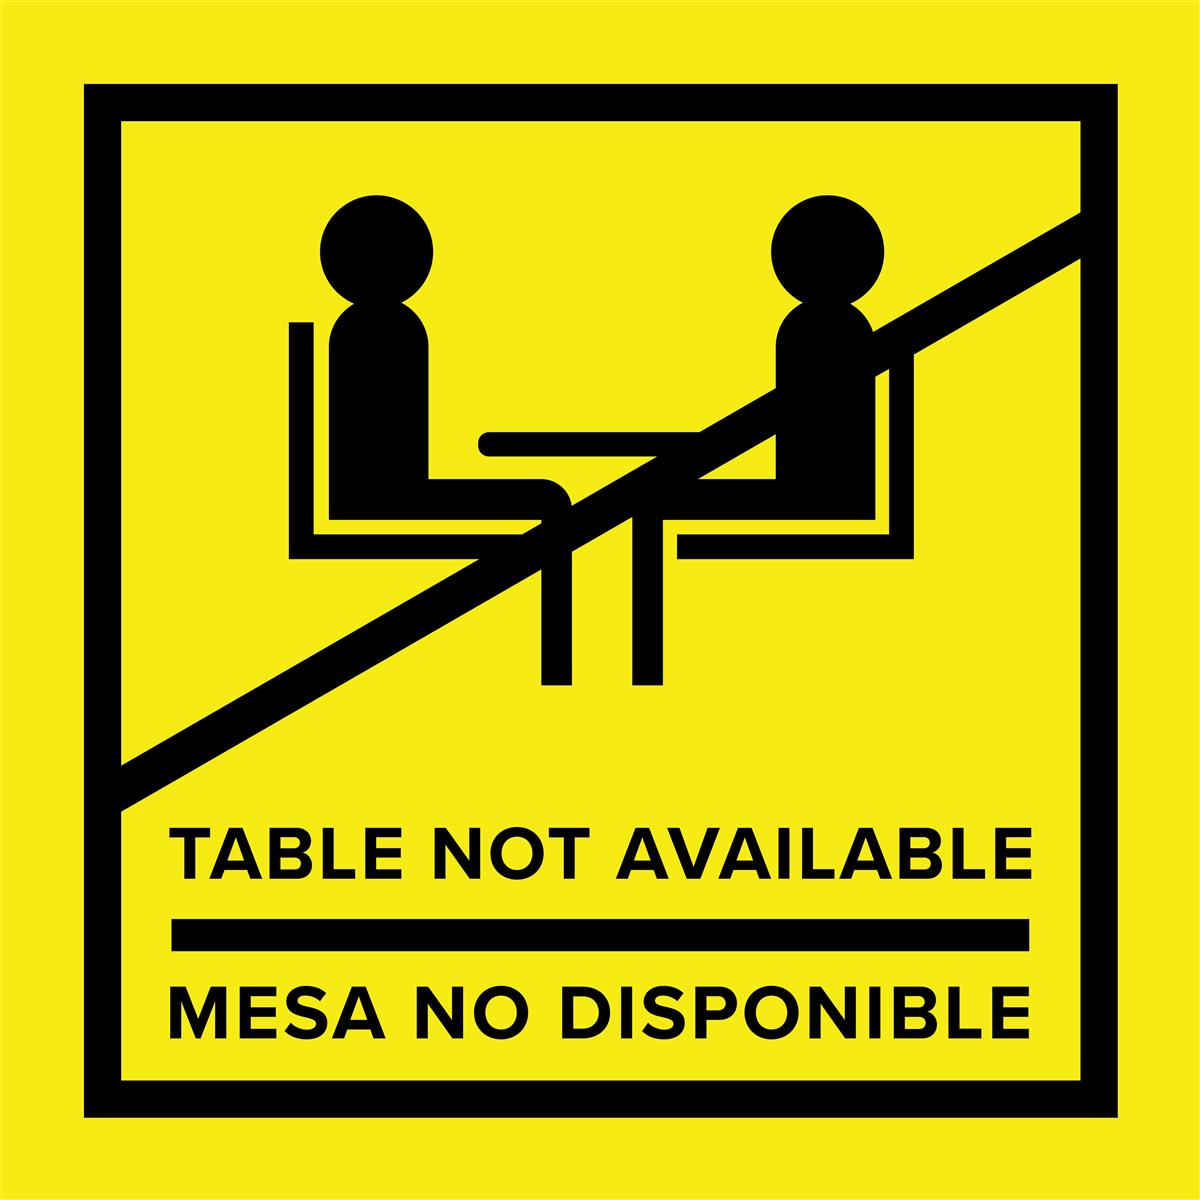 Yellow vinyl no seating bilingual table top sticker